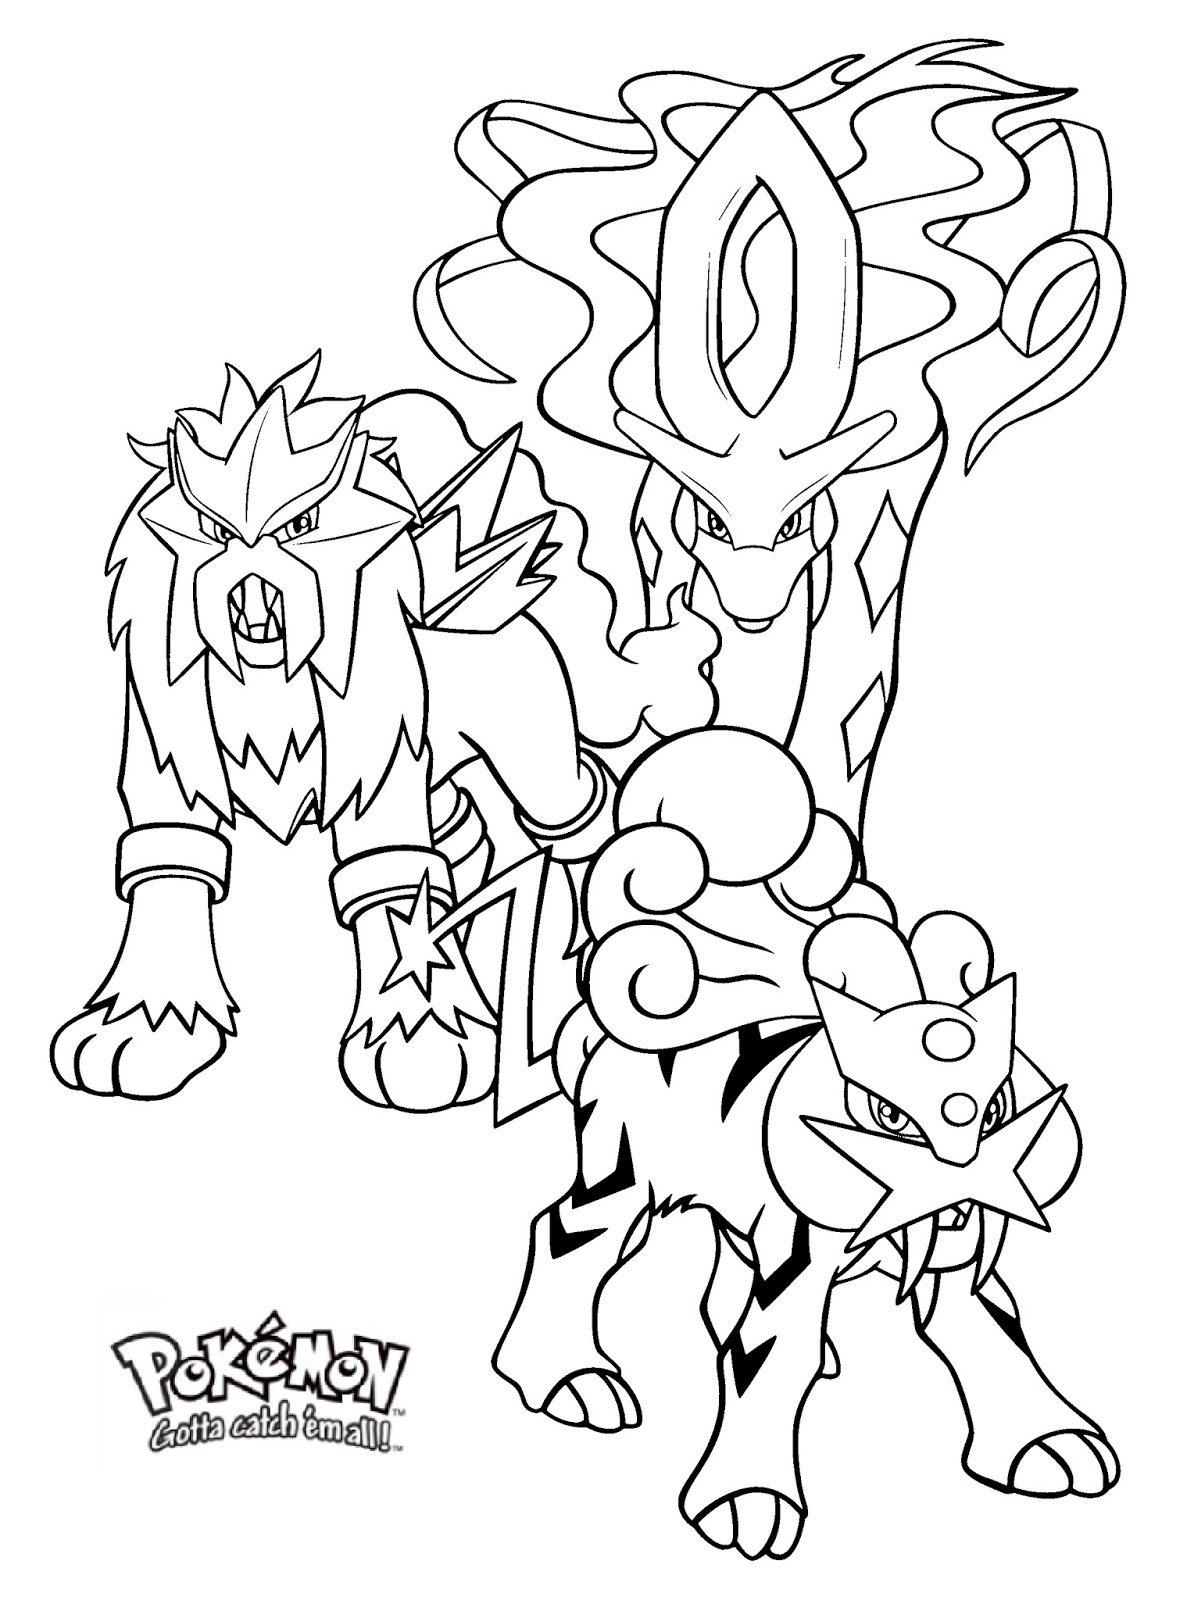 raikou coloring pages - photo#20